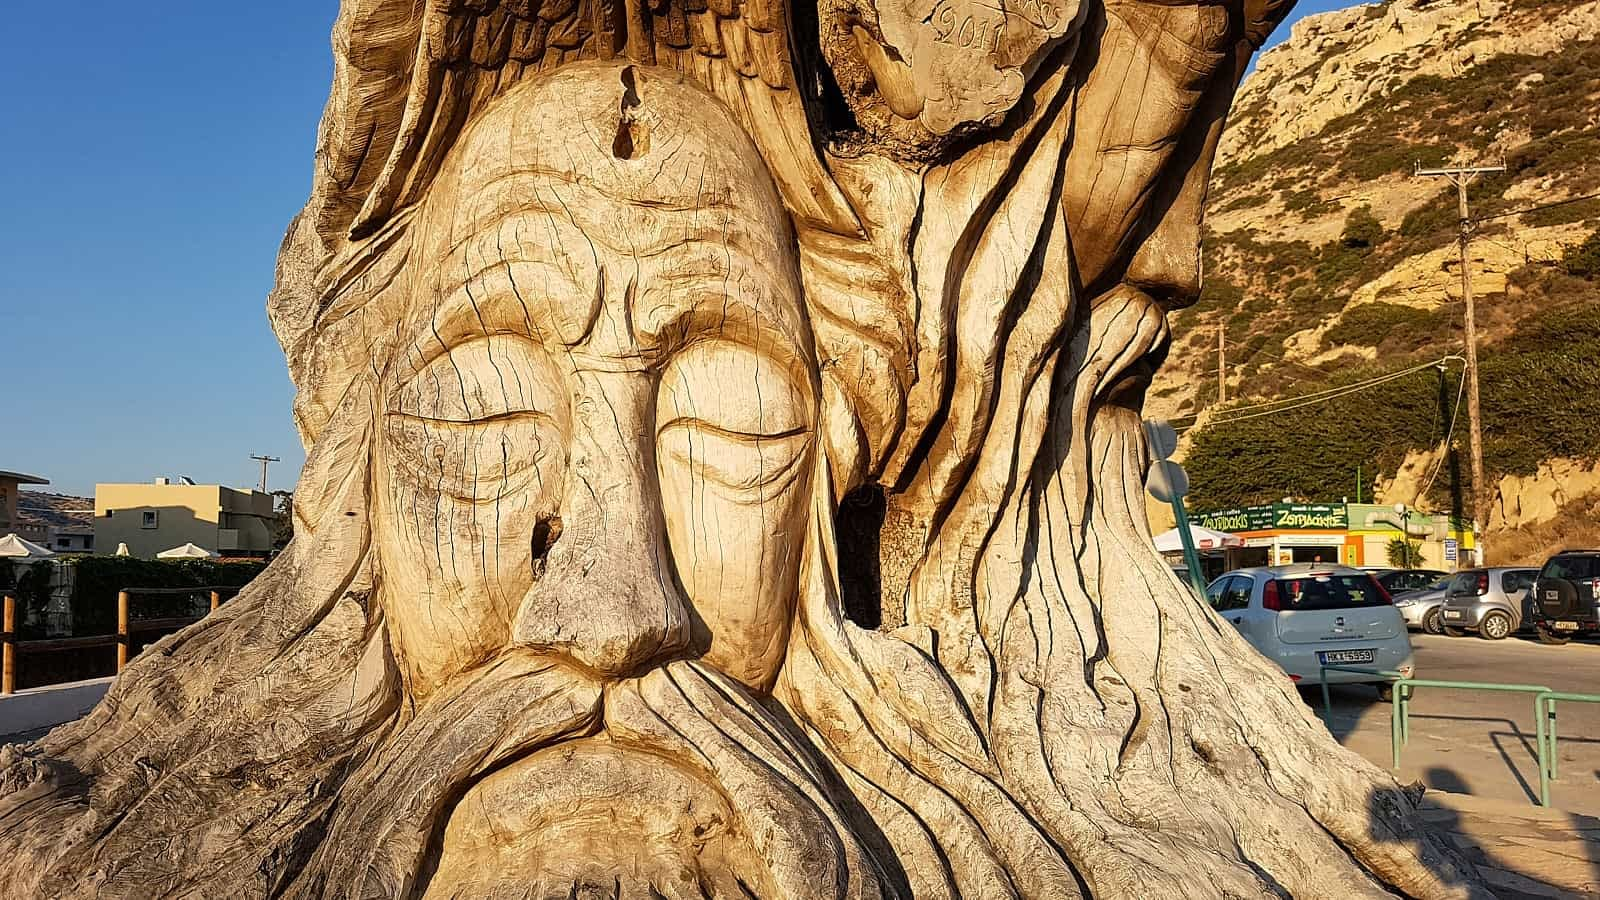 The Old Tree sculpture in Matala carved by Spiros Stefanakis